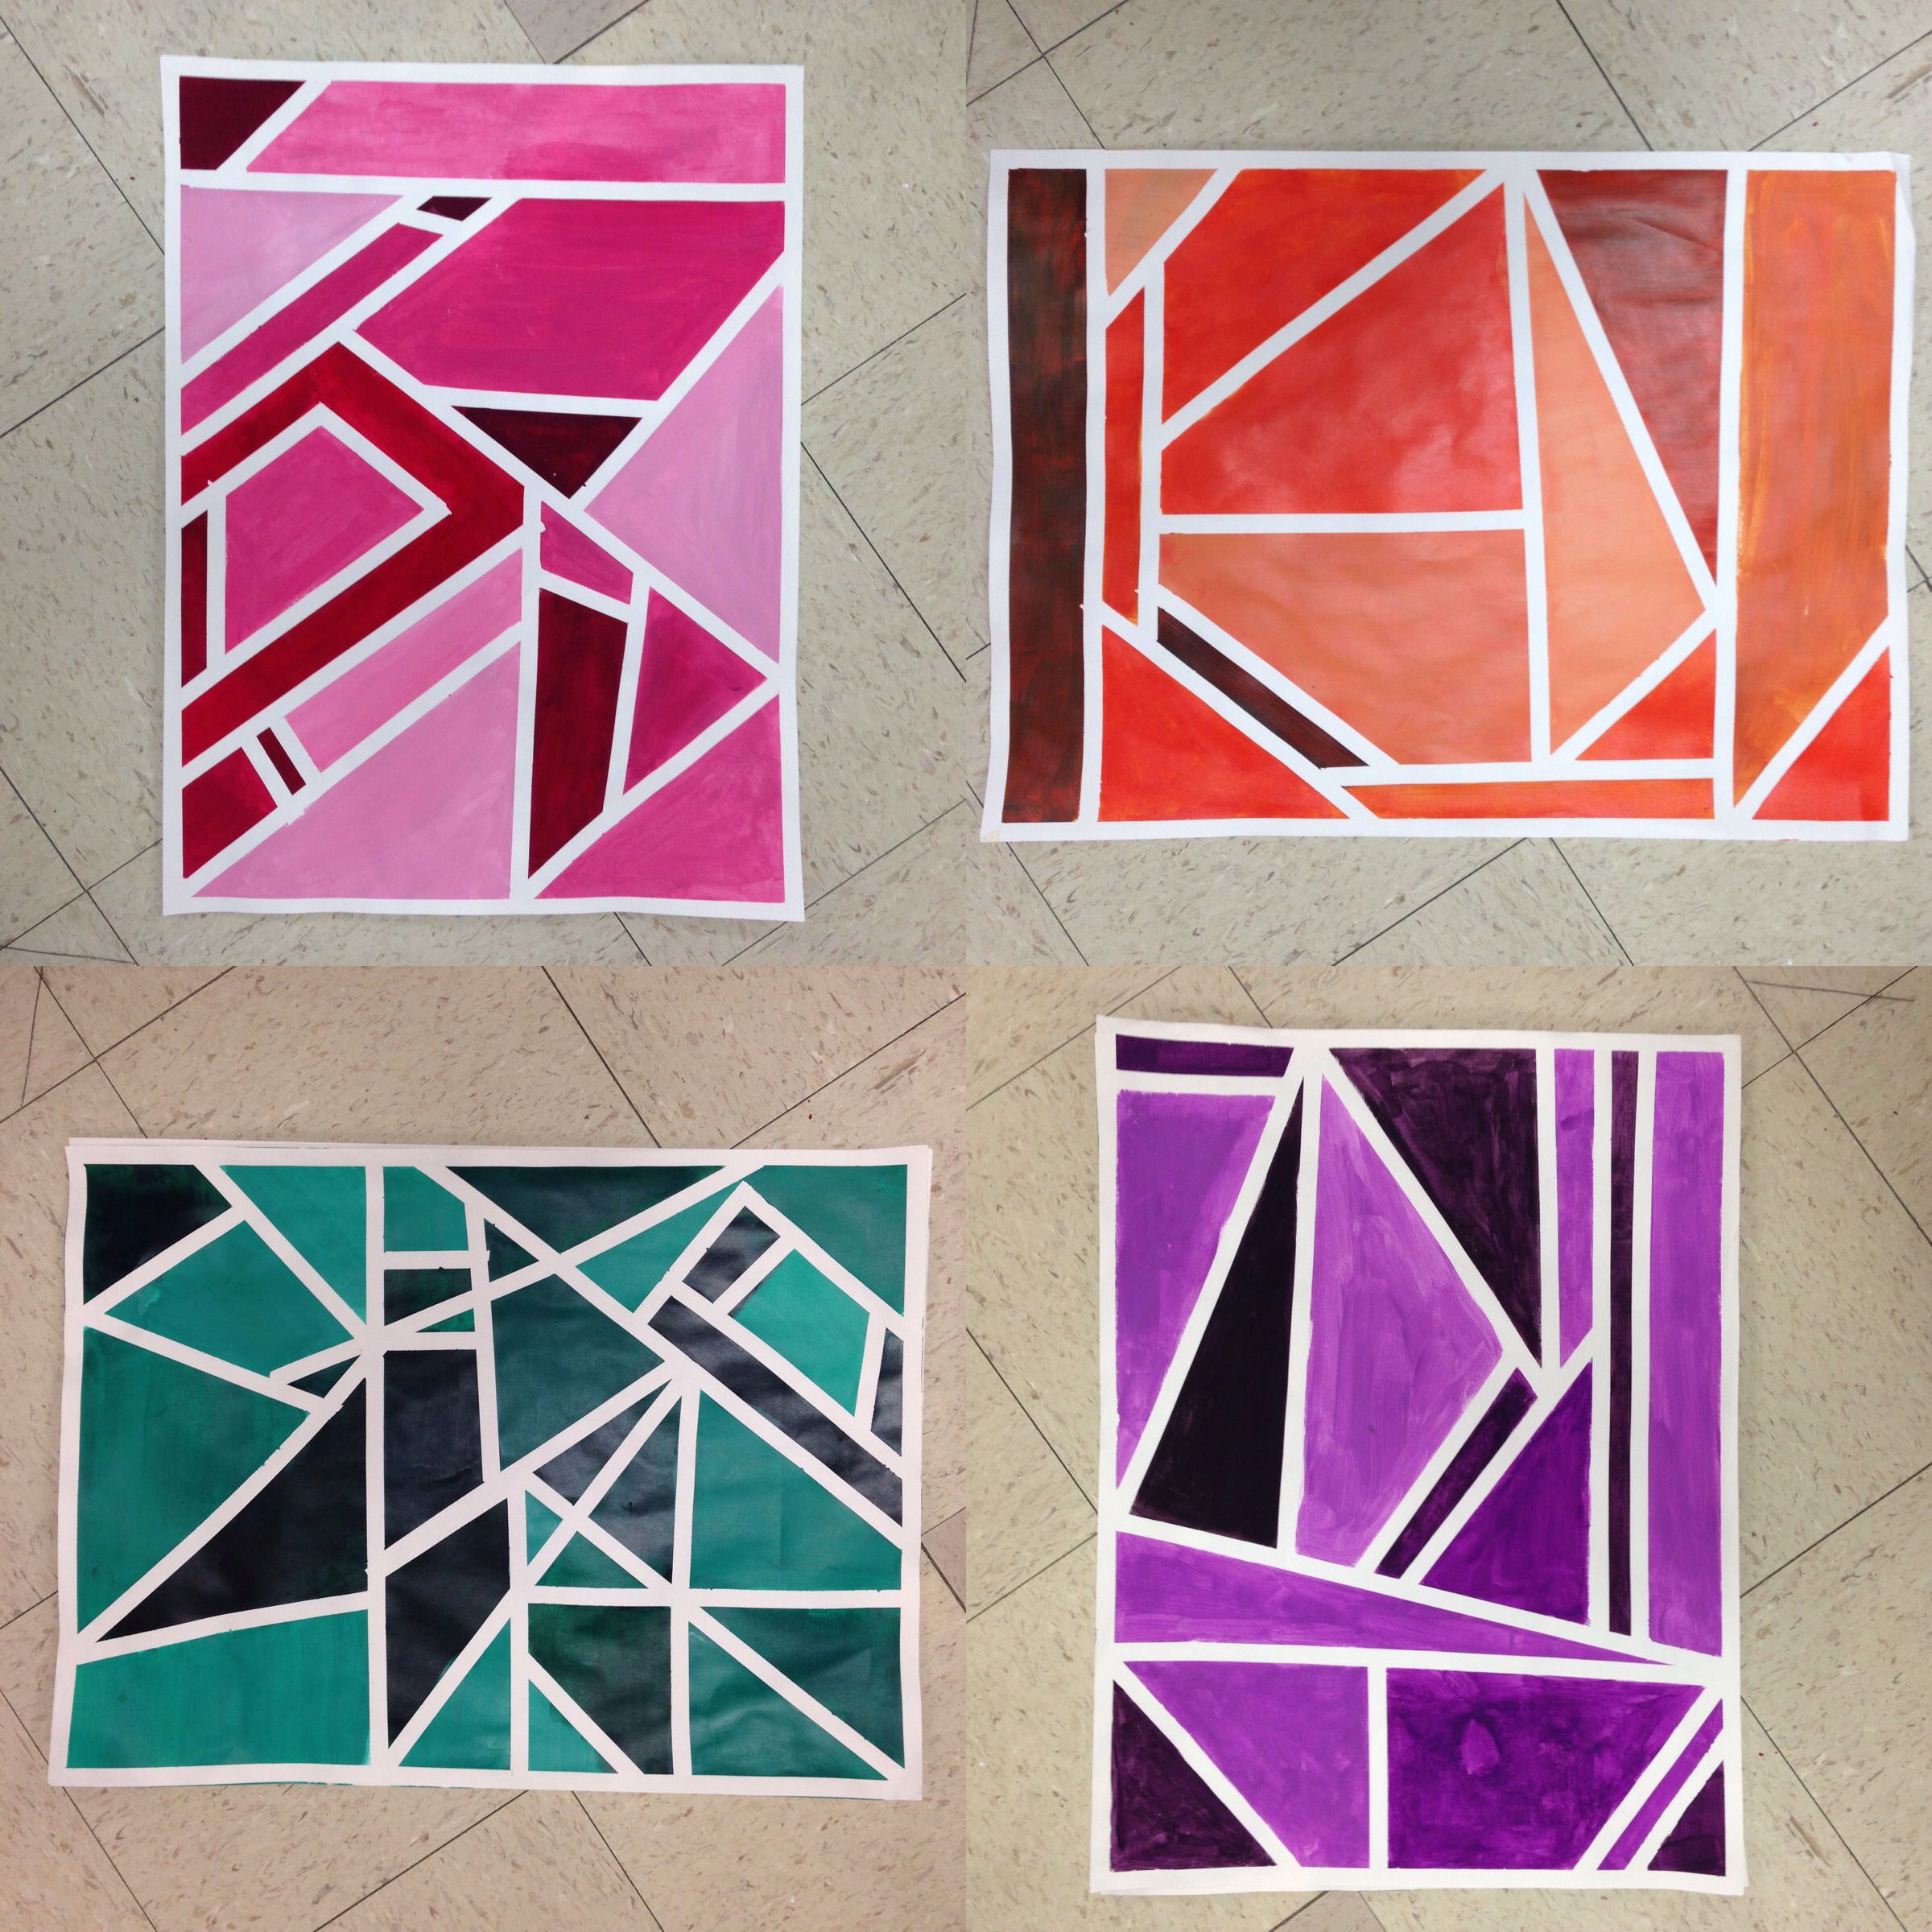 Colour shades activities - Students Used Drafting Tape To Create Interesting Sections Chose A Color And Started To Mix Tints And Shades Monochromatic Colors In Water Colors